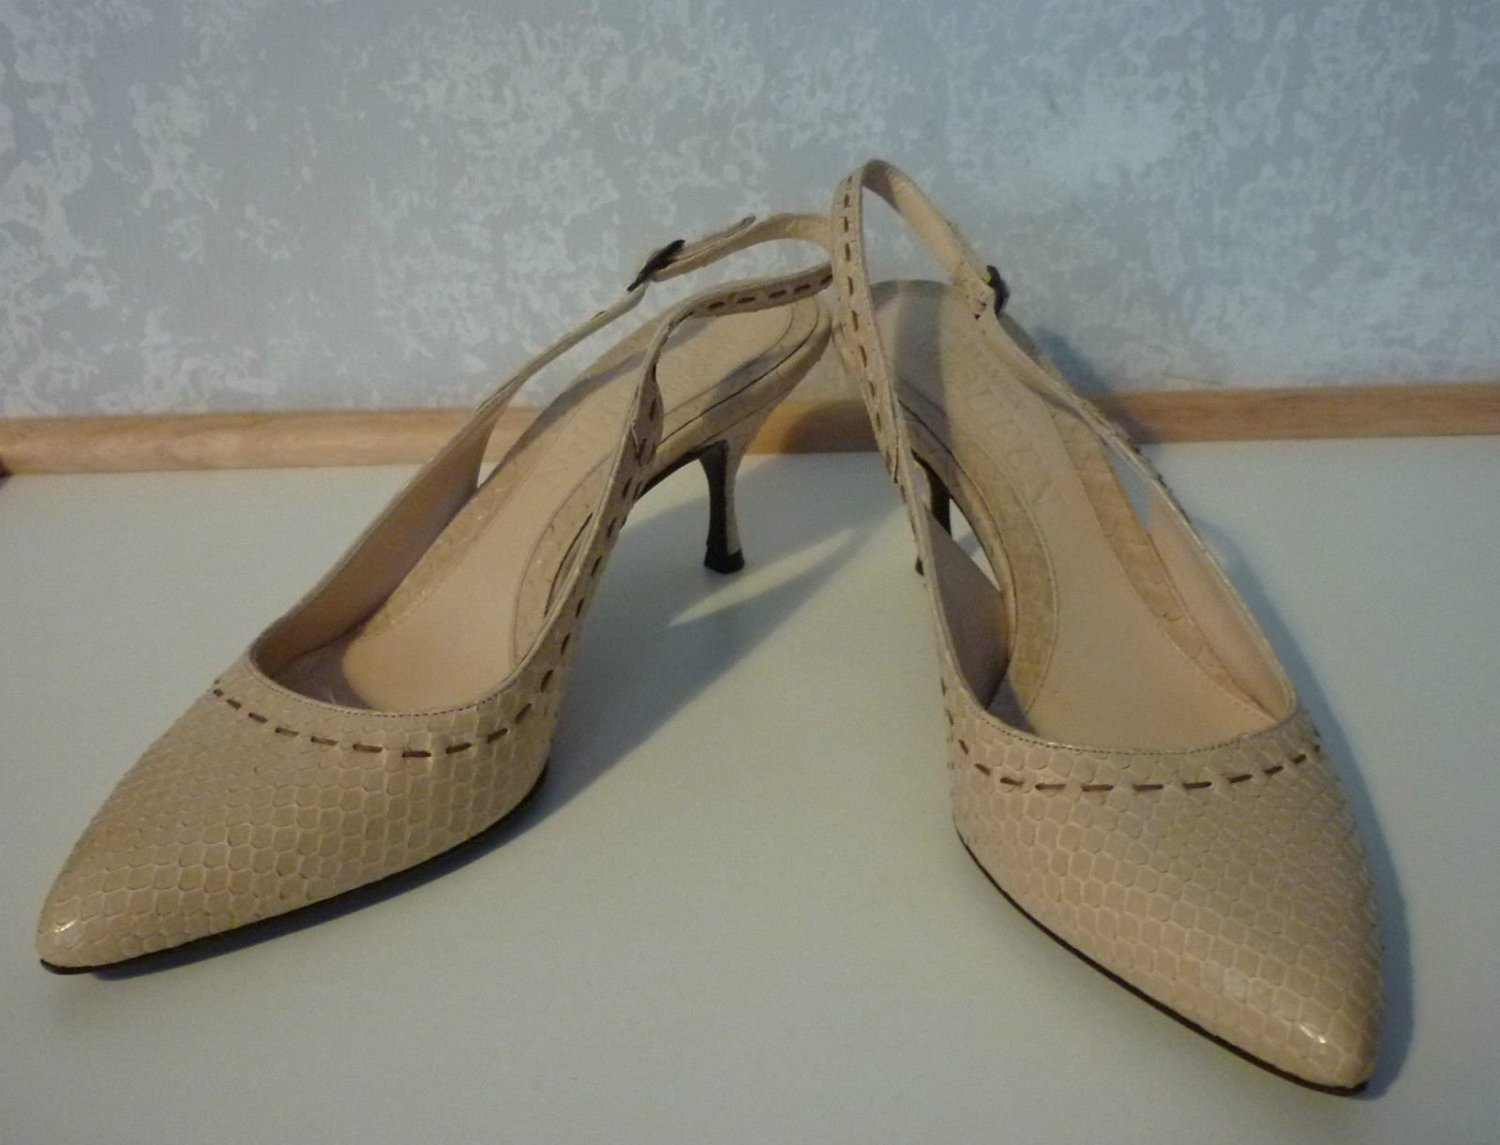 ALEXANDER McQUEEN Shoes - Beige snake skin sling back shoes Size 37